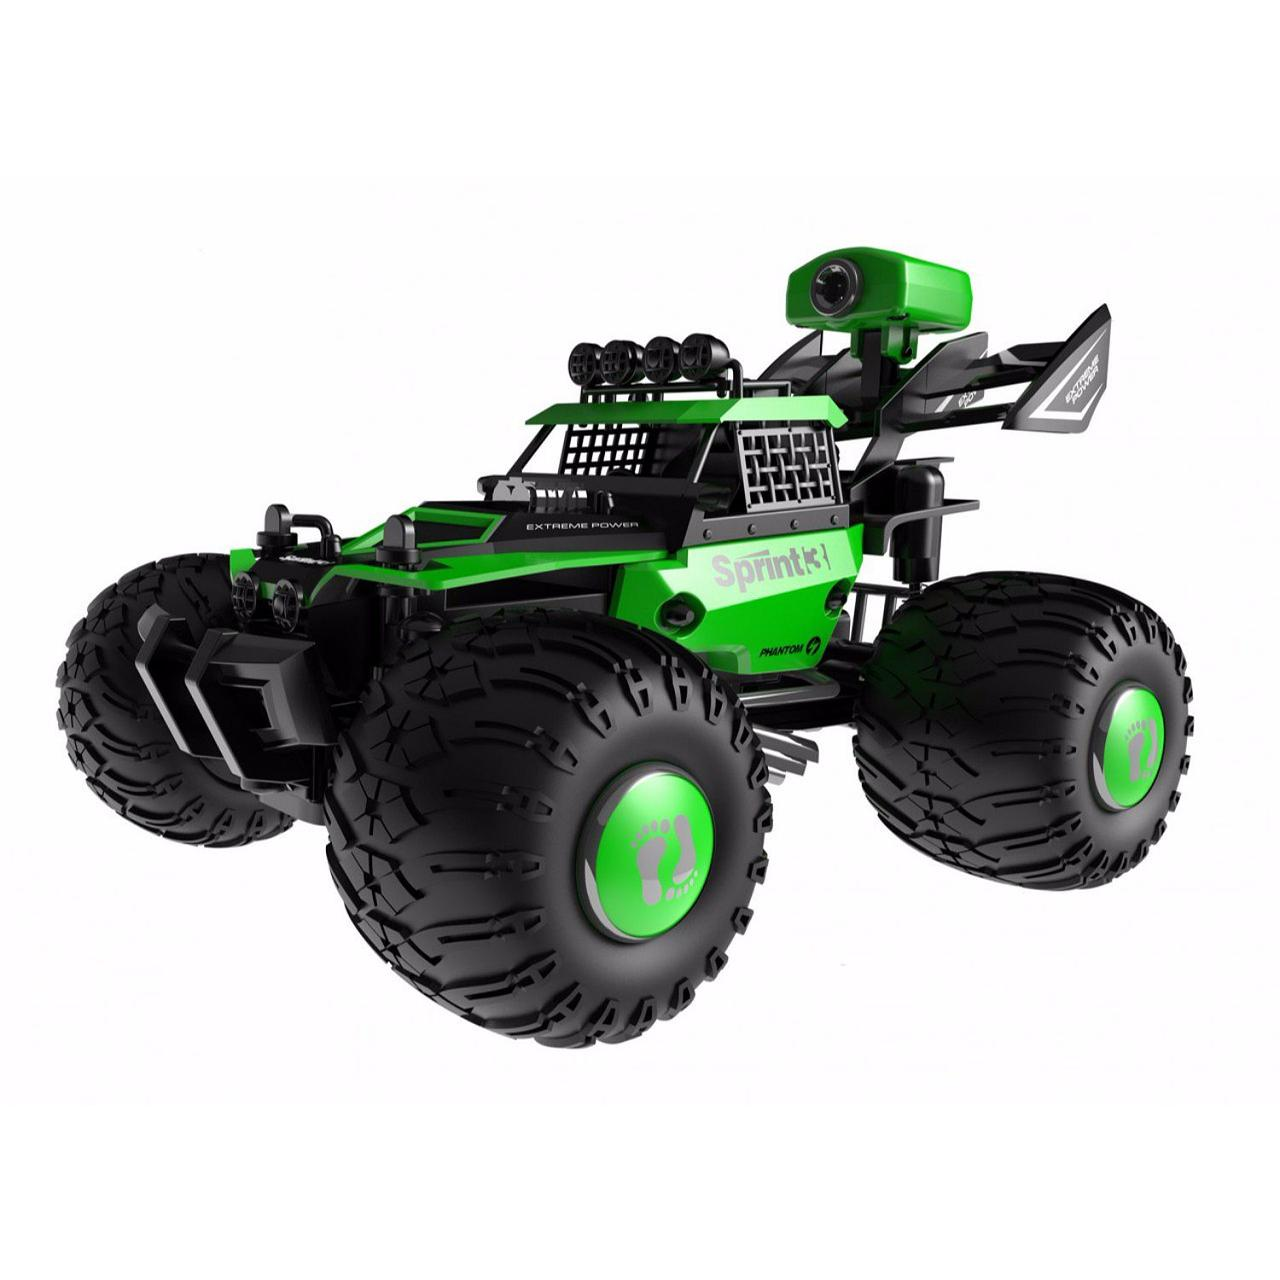 Crazon 1:28 Scale Monster Truck 172801 с FPV камерой